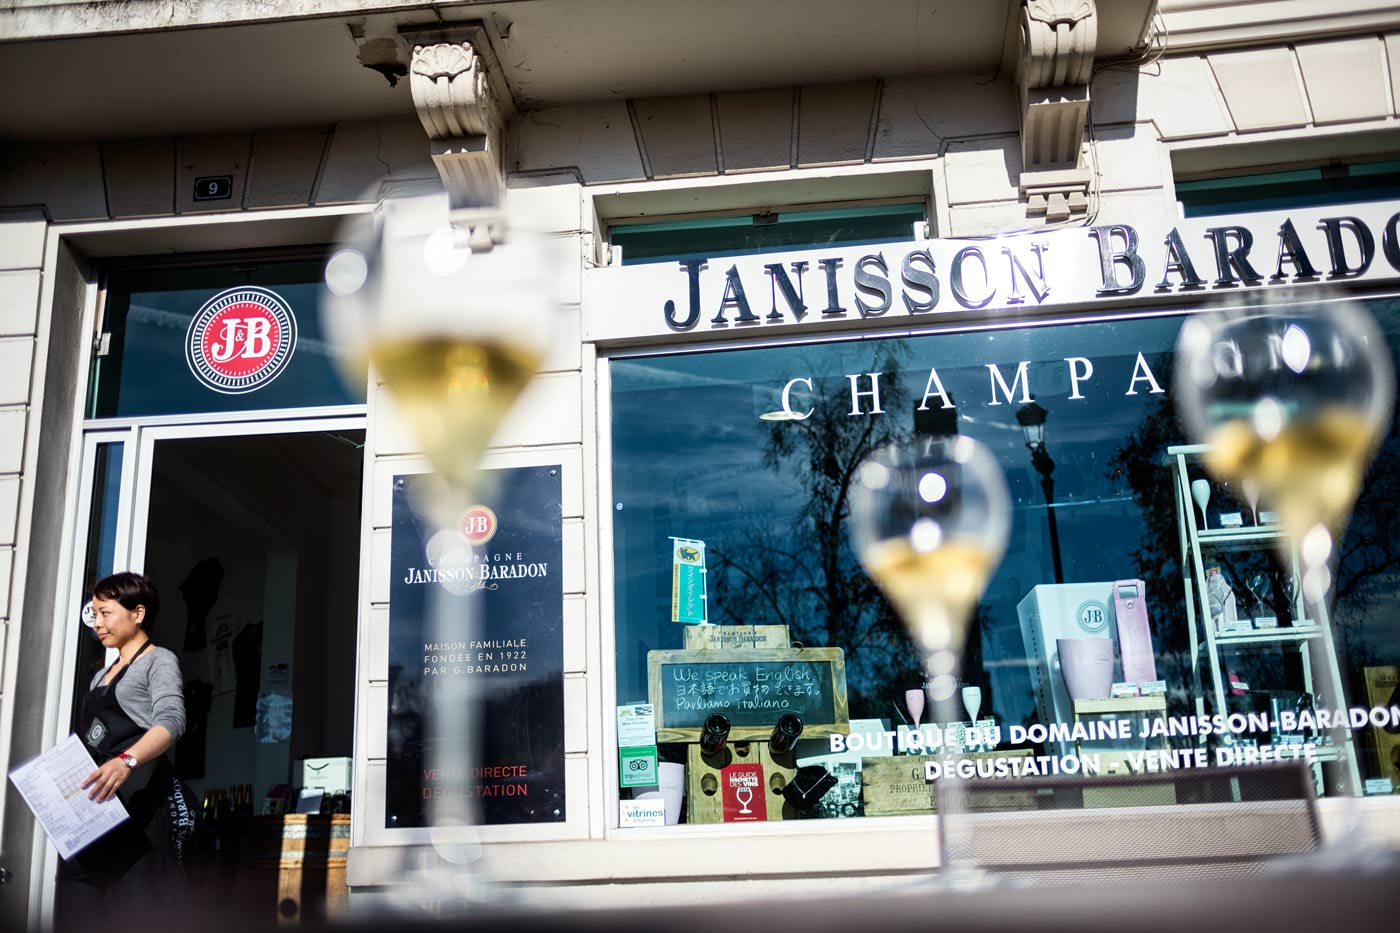 A french champagne shop in the French Champagne region